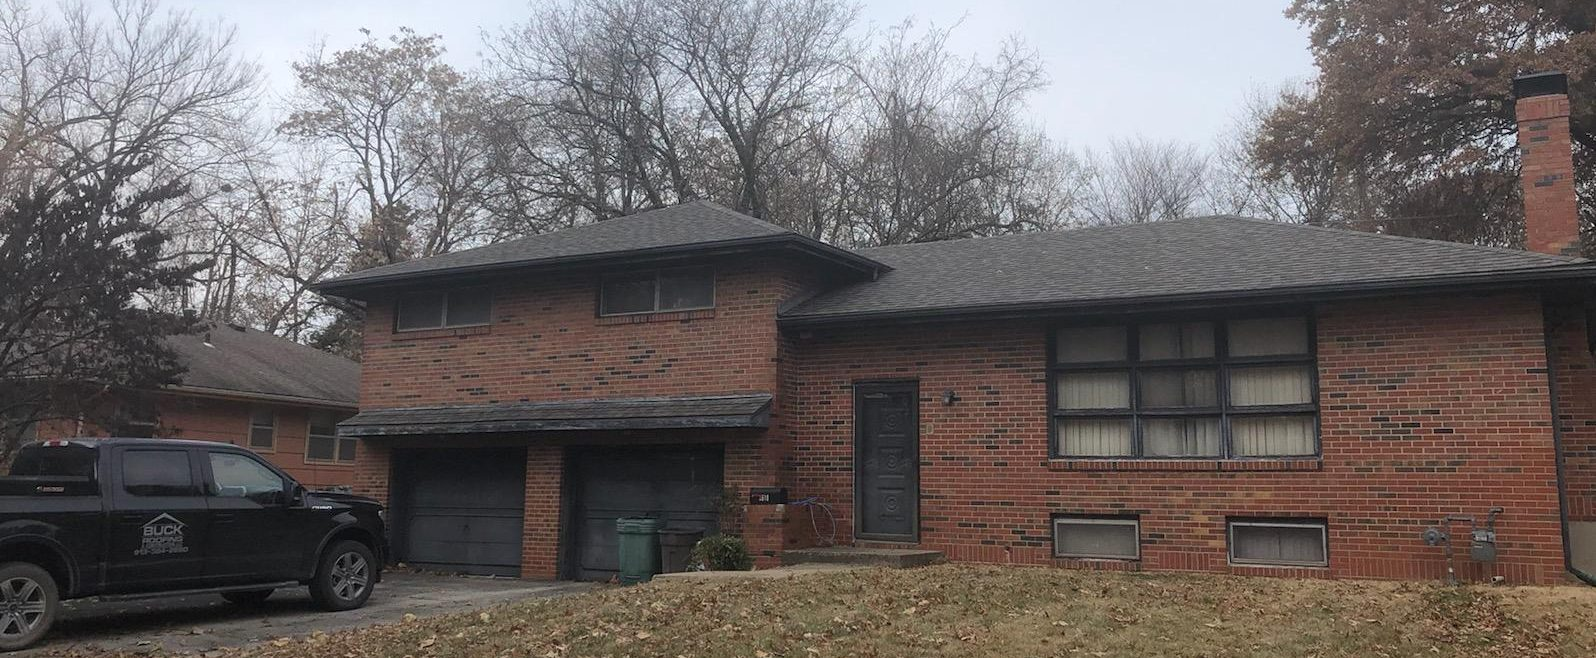 A brick house with a brand new roof from the residential roofing experts at Buck Roofing